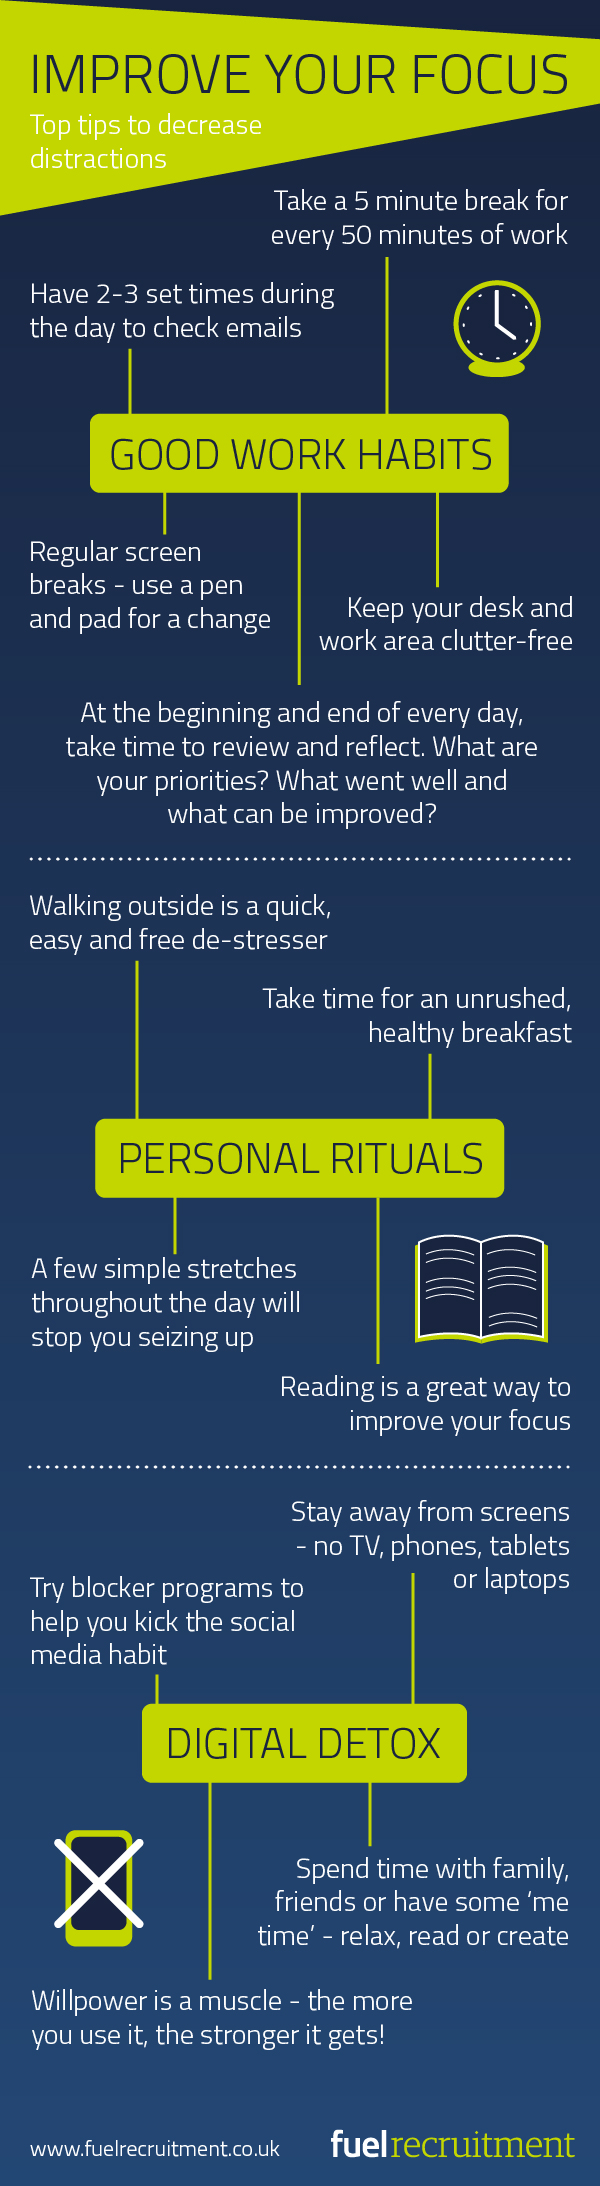 Improve Your Focus Infographic